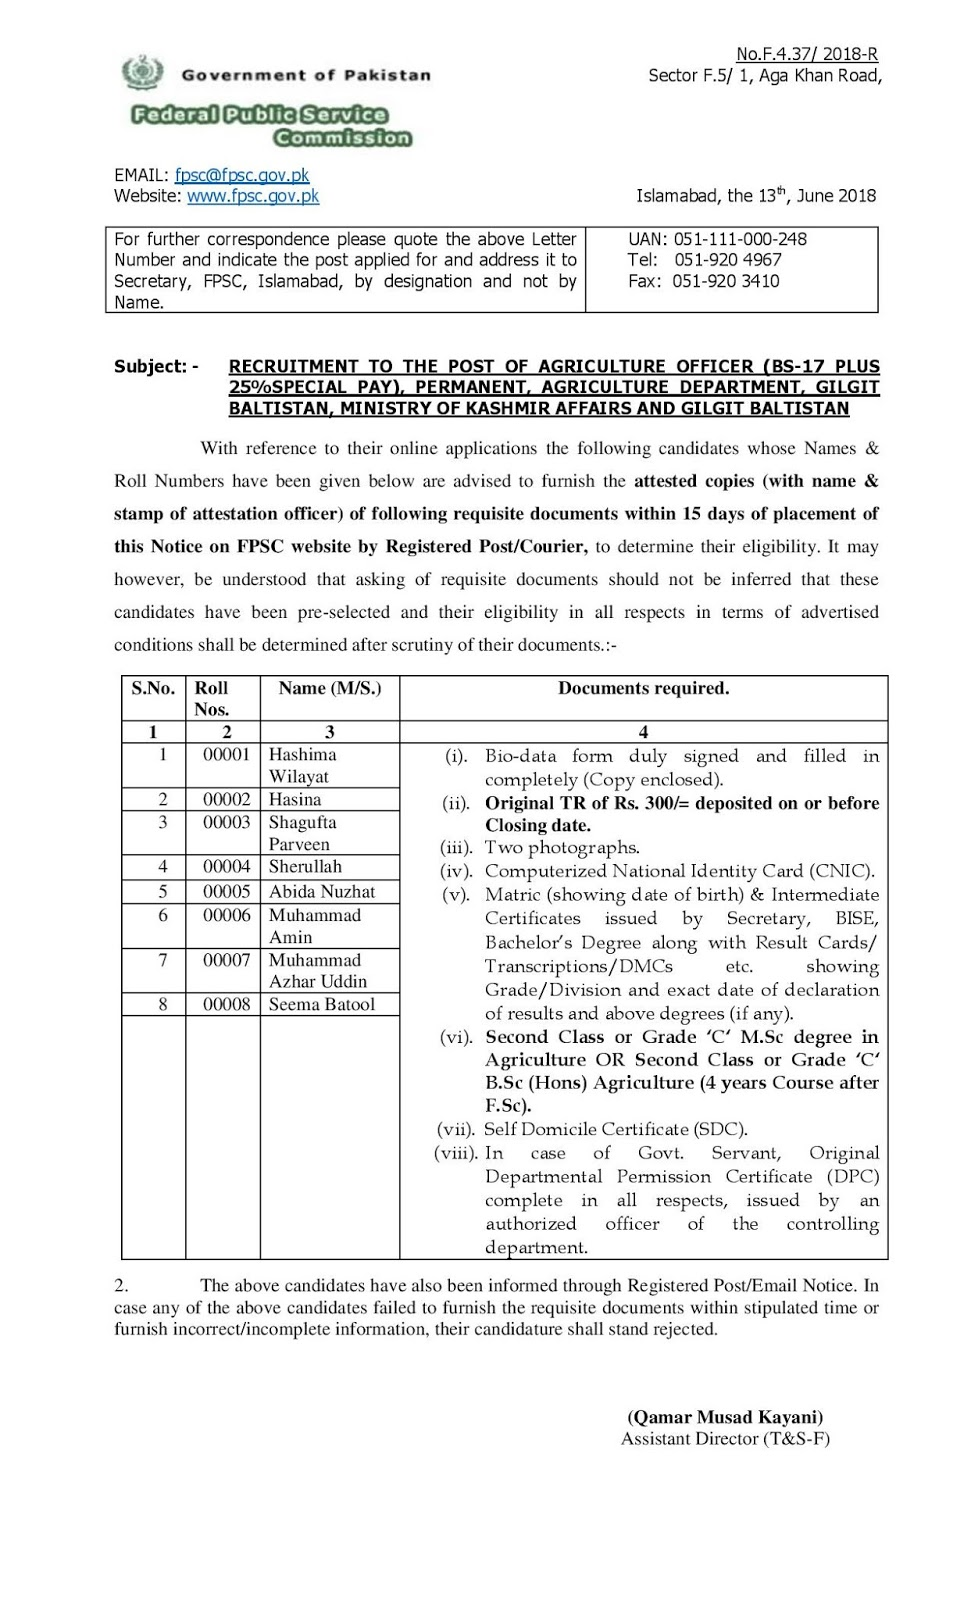 FPSC Notice for Submission of Documents RECRUITMENT TO THE